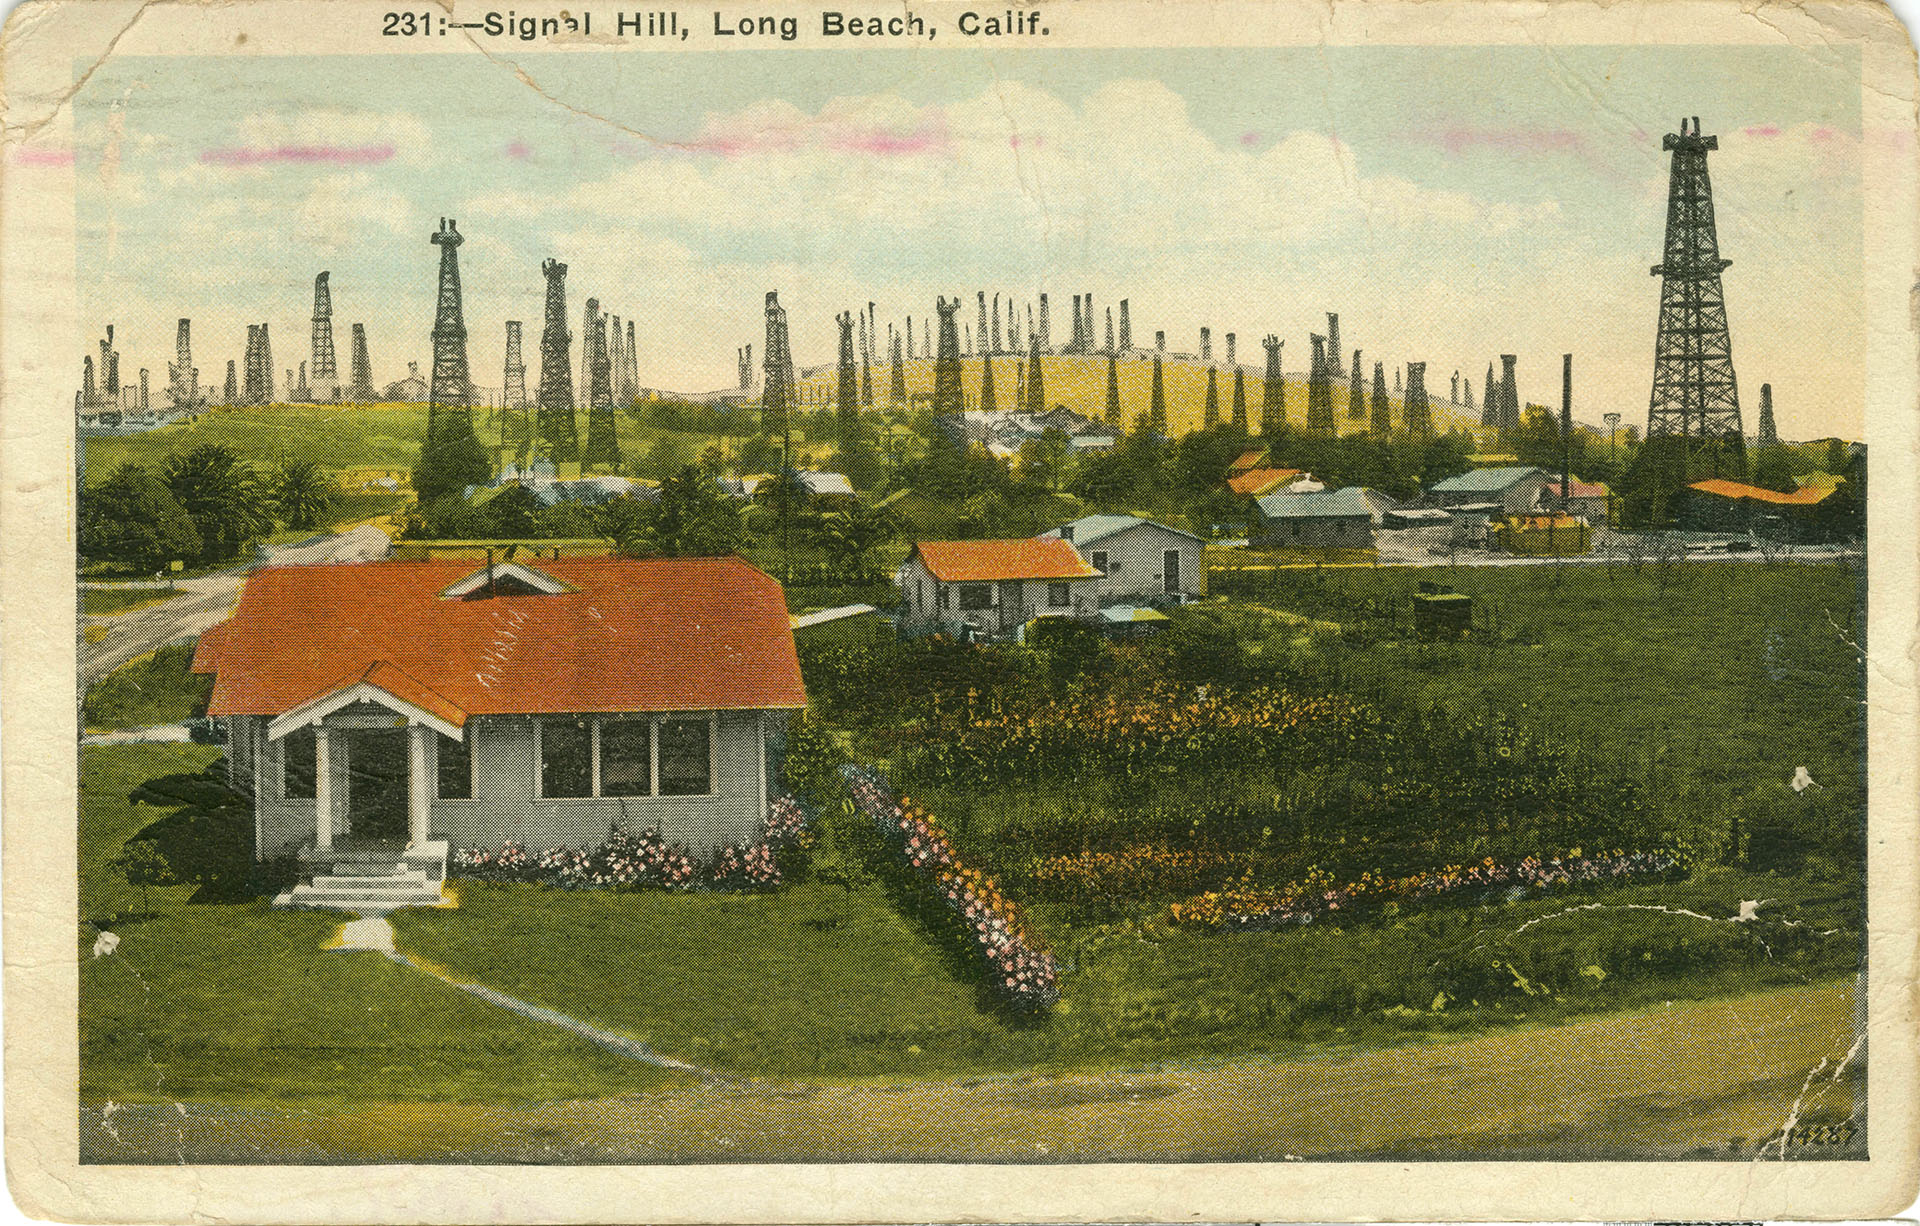 Circa 1941 postcard of the Signal Hill oil field. Courtesy of the Werner Von Boltenstern Postcard Collection, Loyola Marymount University Library.